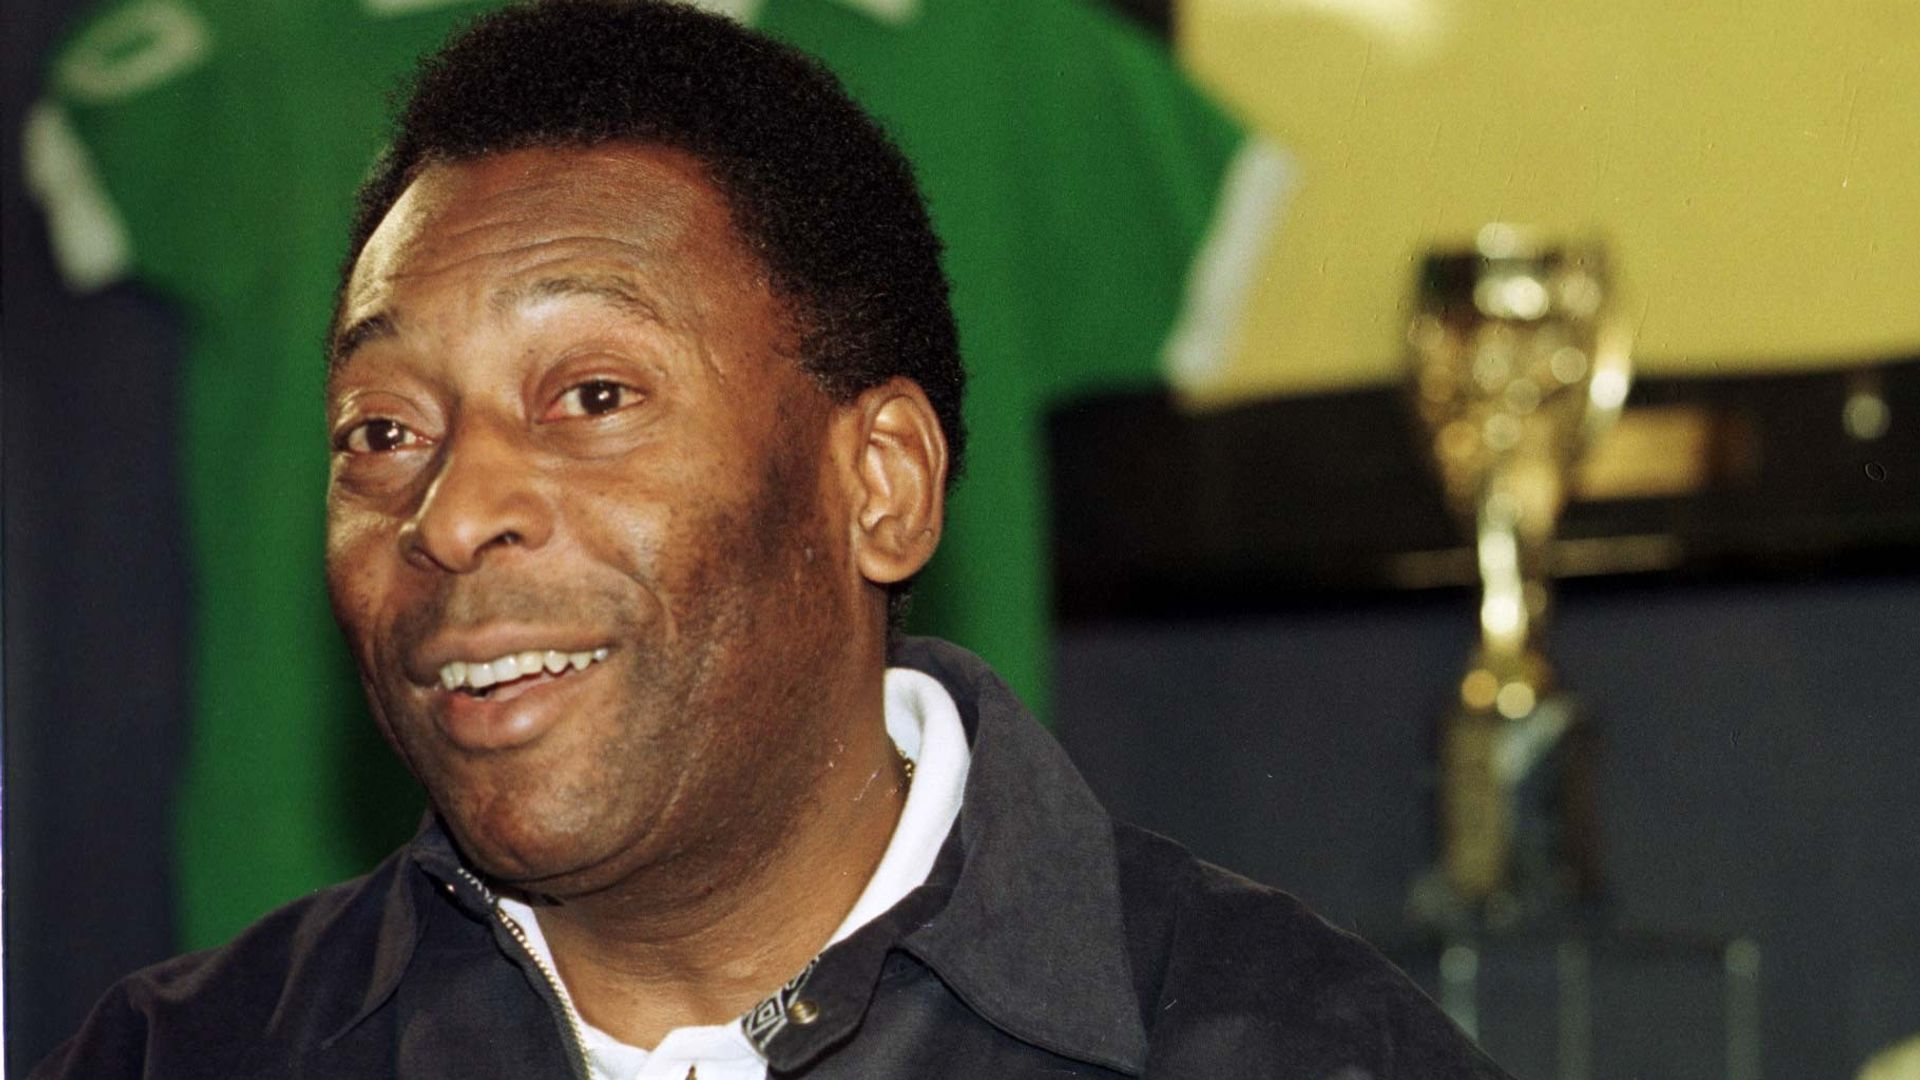 Pele: I'm still recovering very well